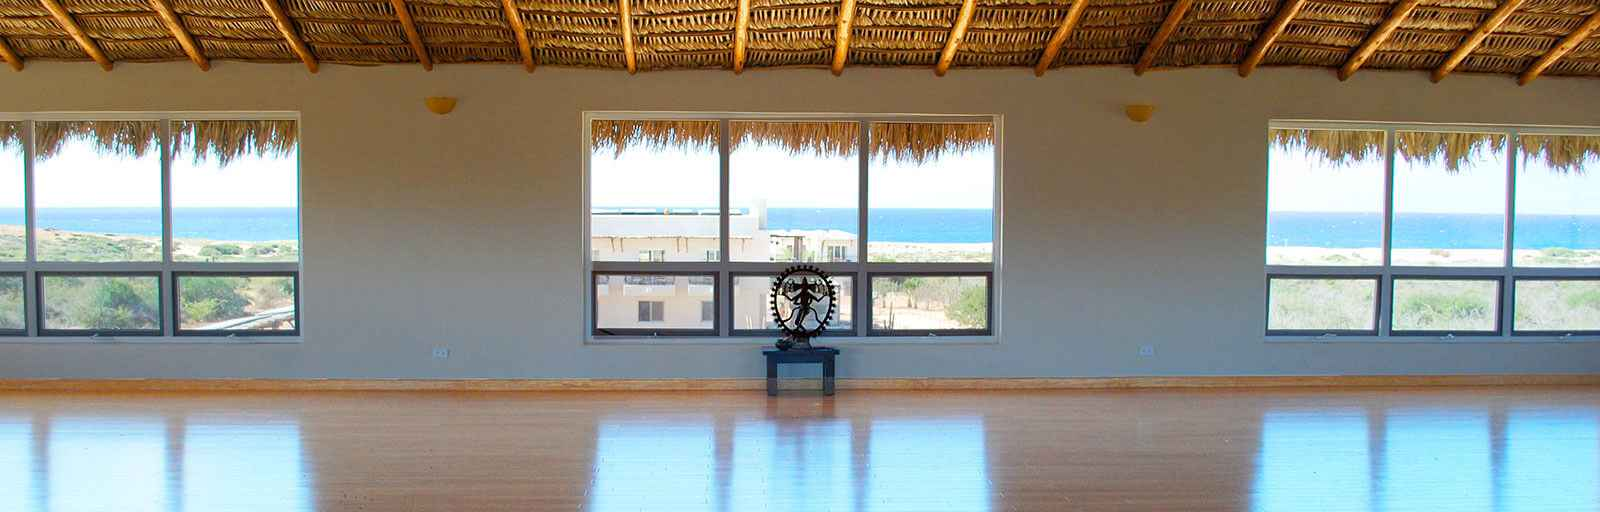 Mexico Yoga Retreat Yoga Studio: Ocean View